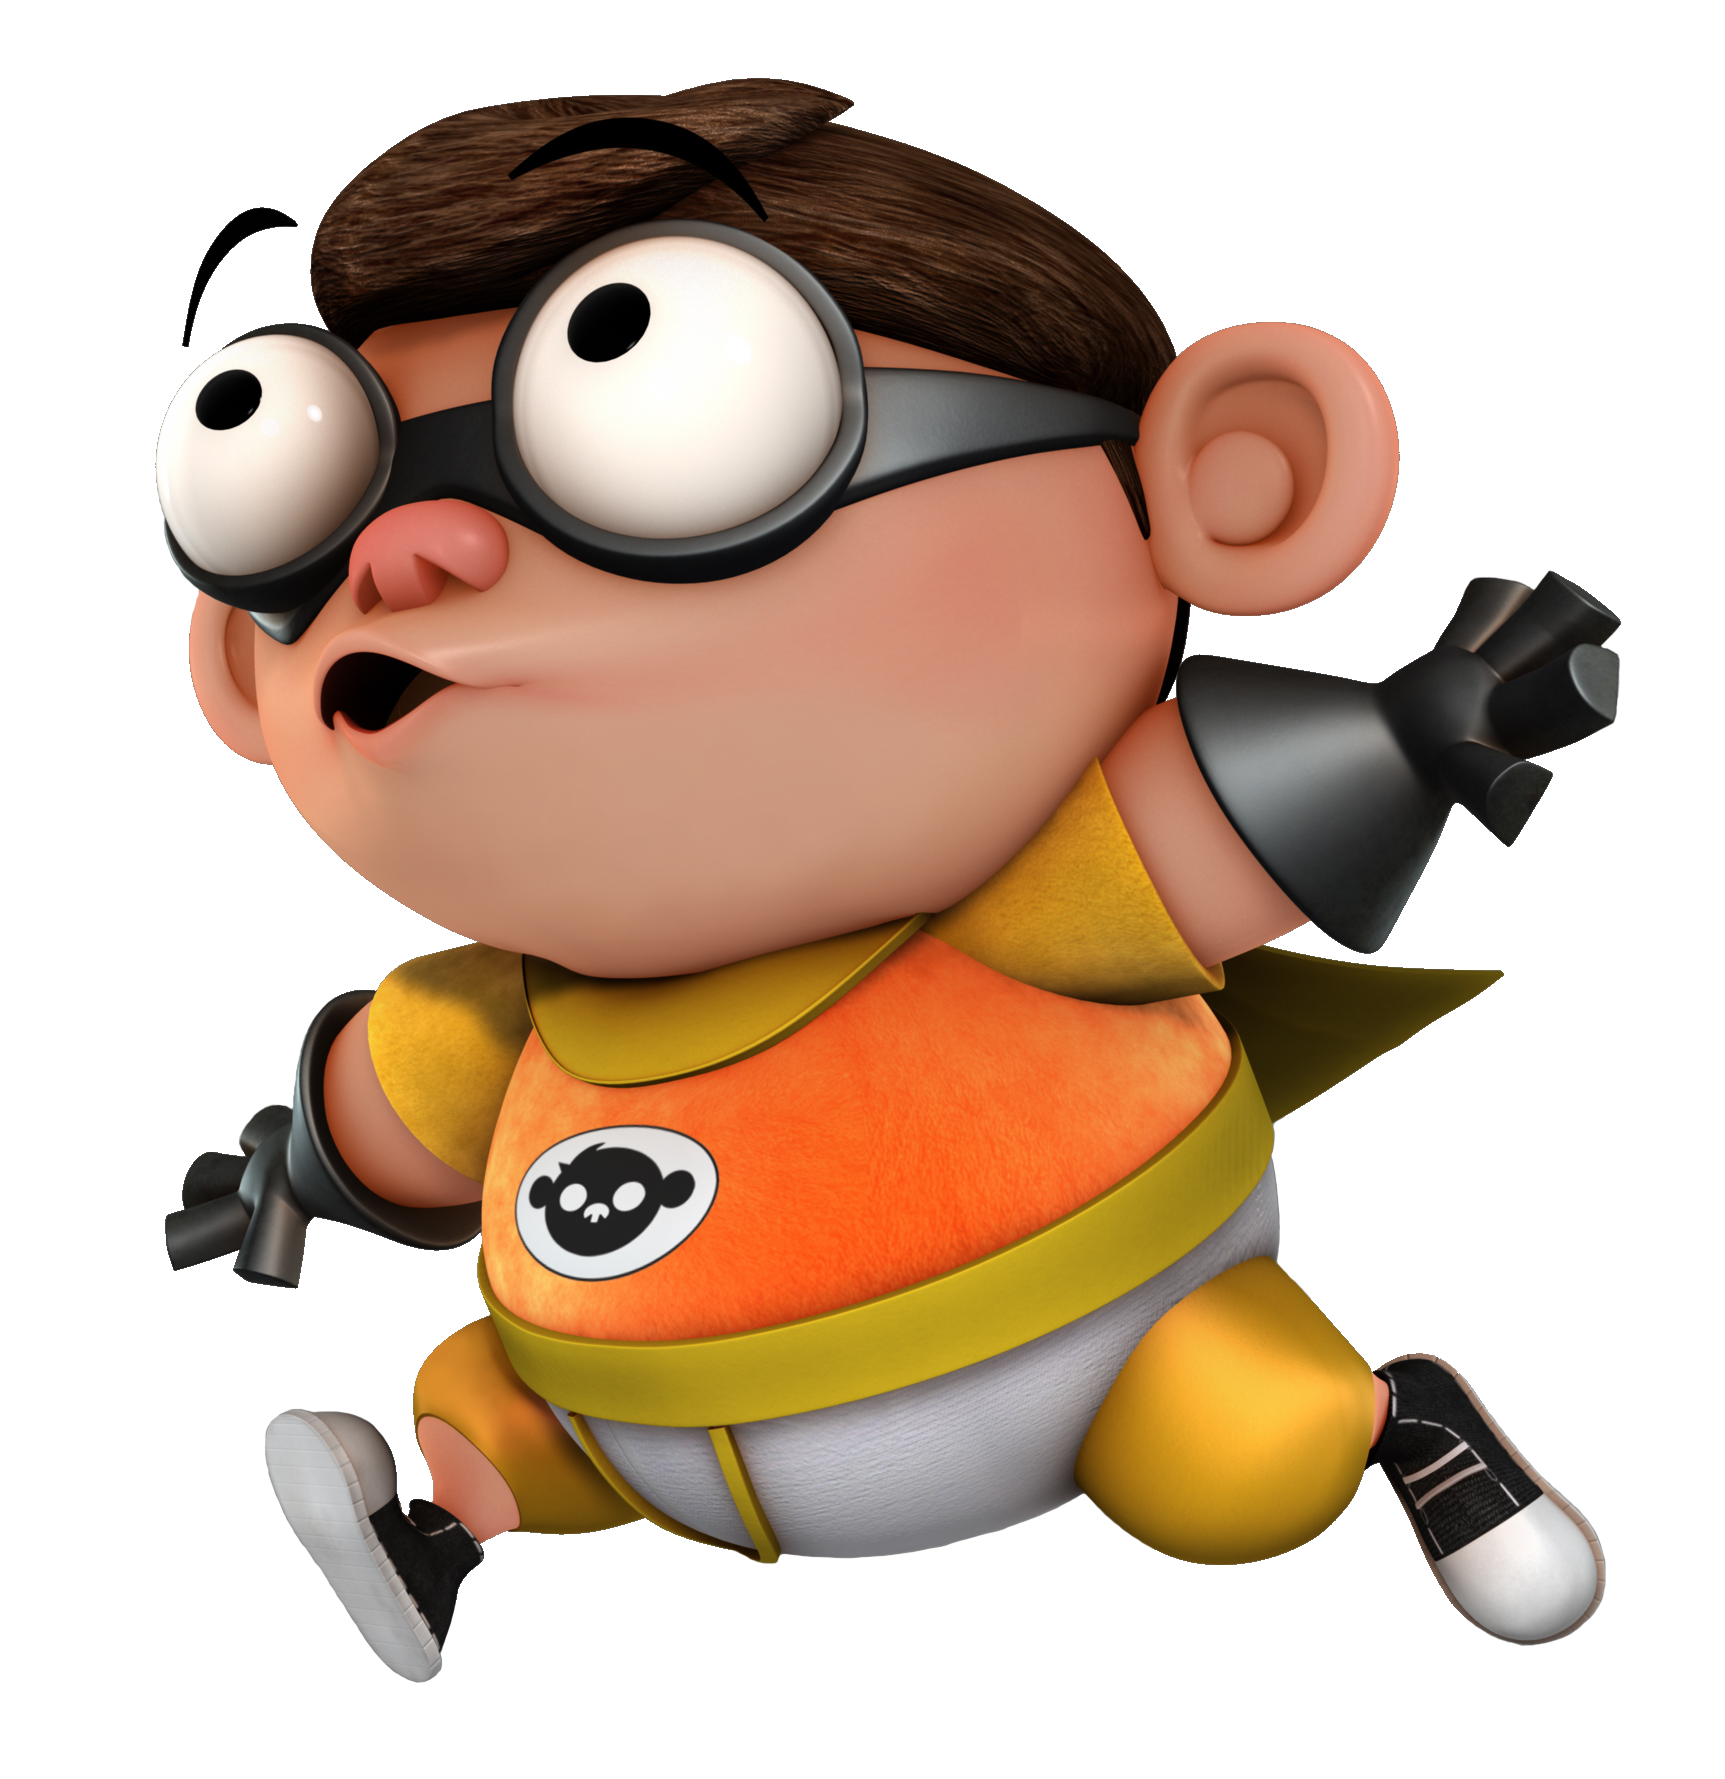 from Zachariah fanboy and chum chum is gay